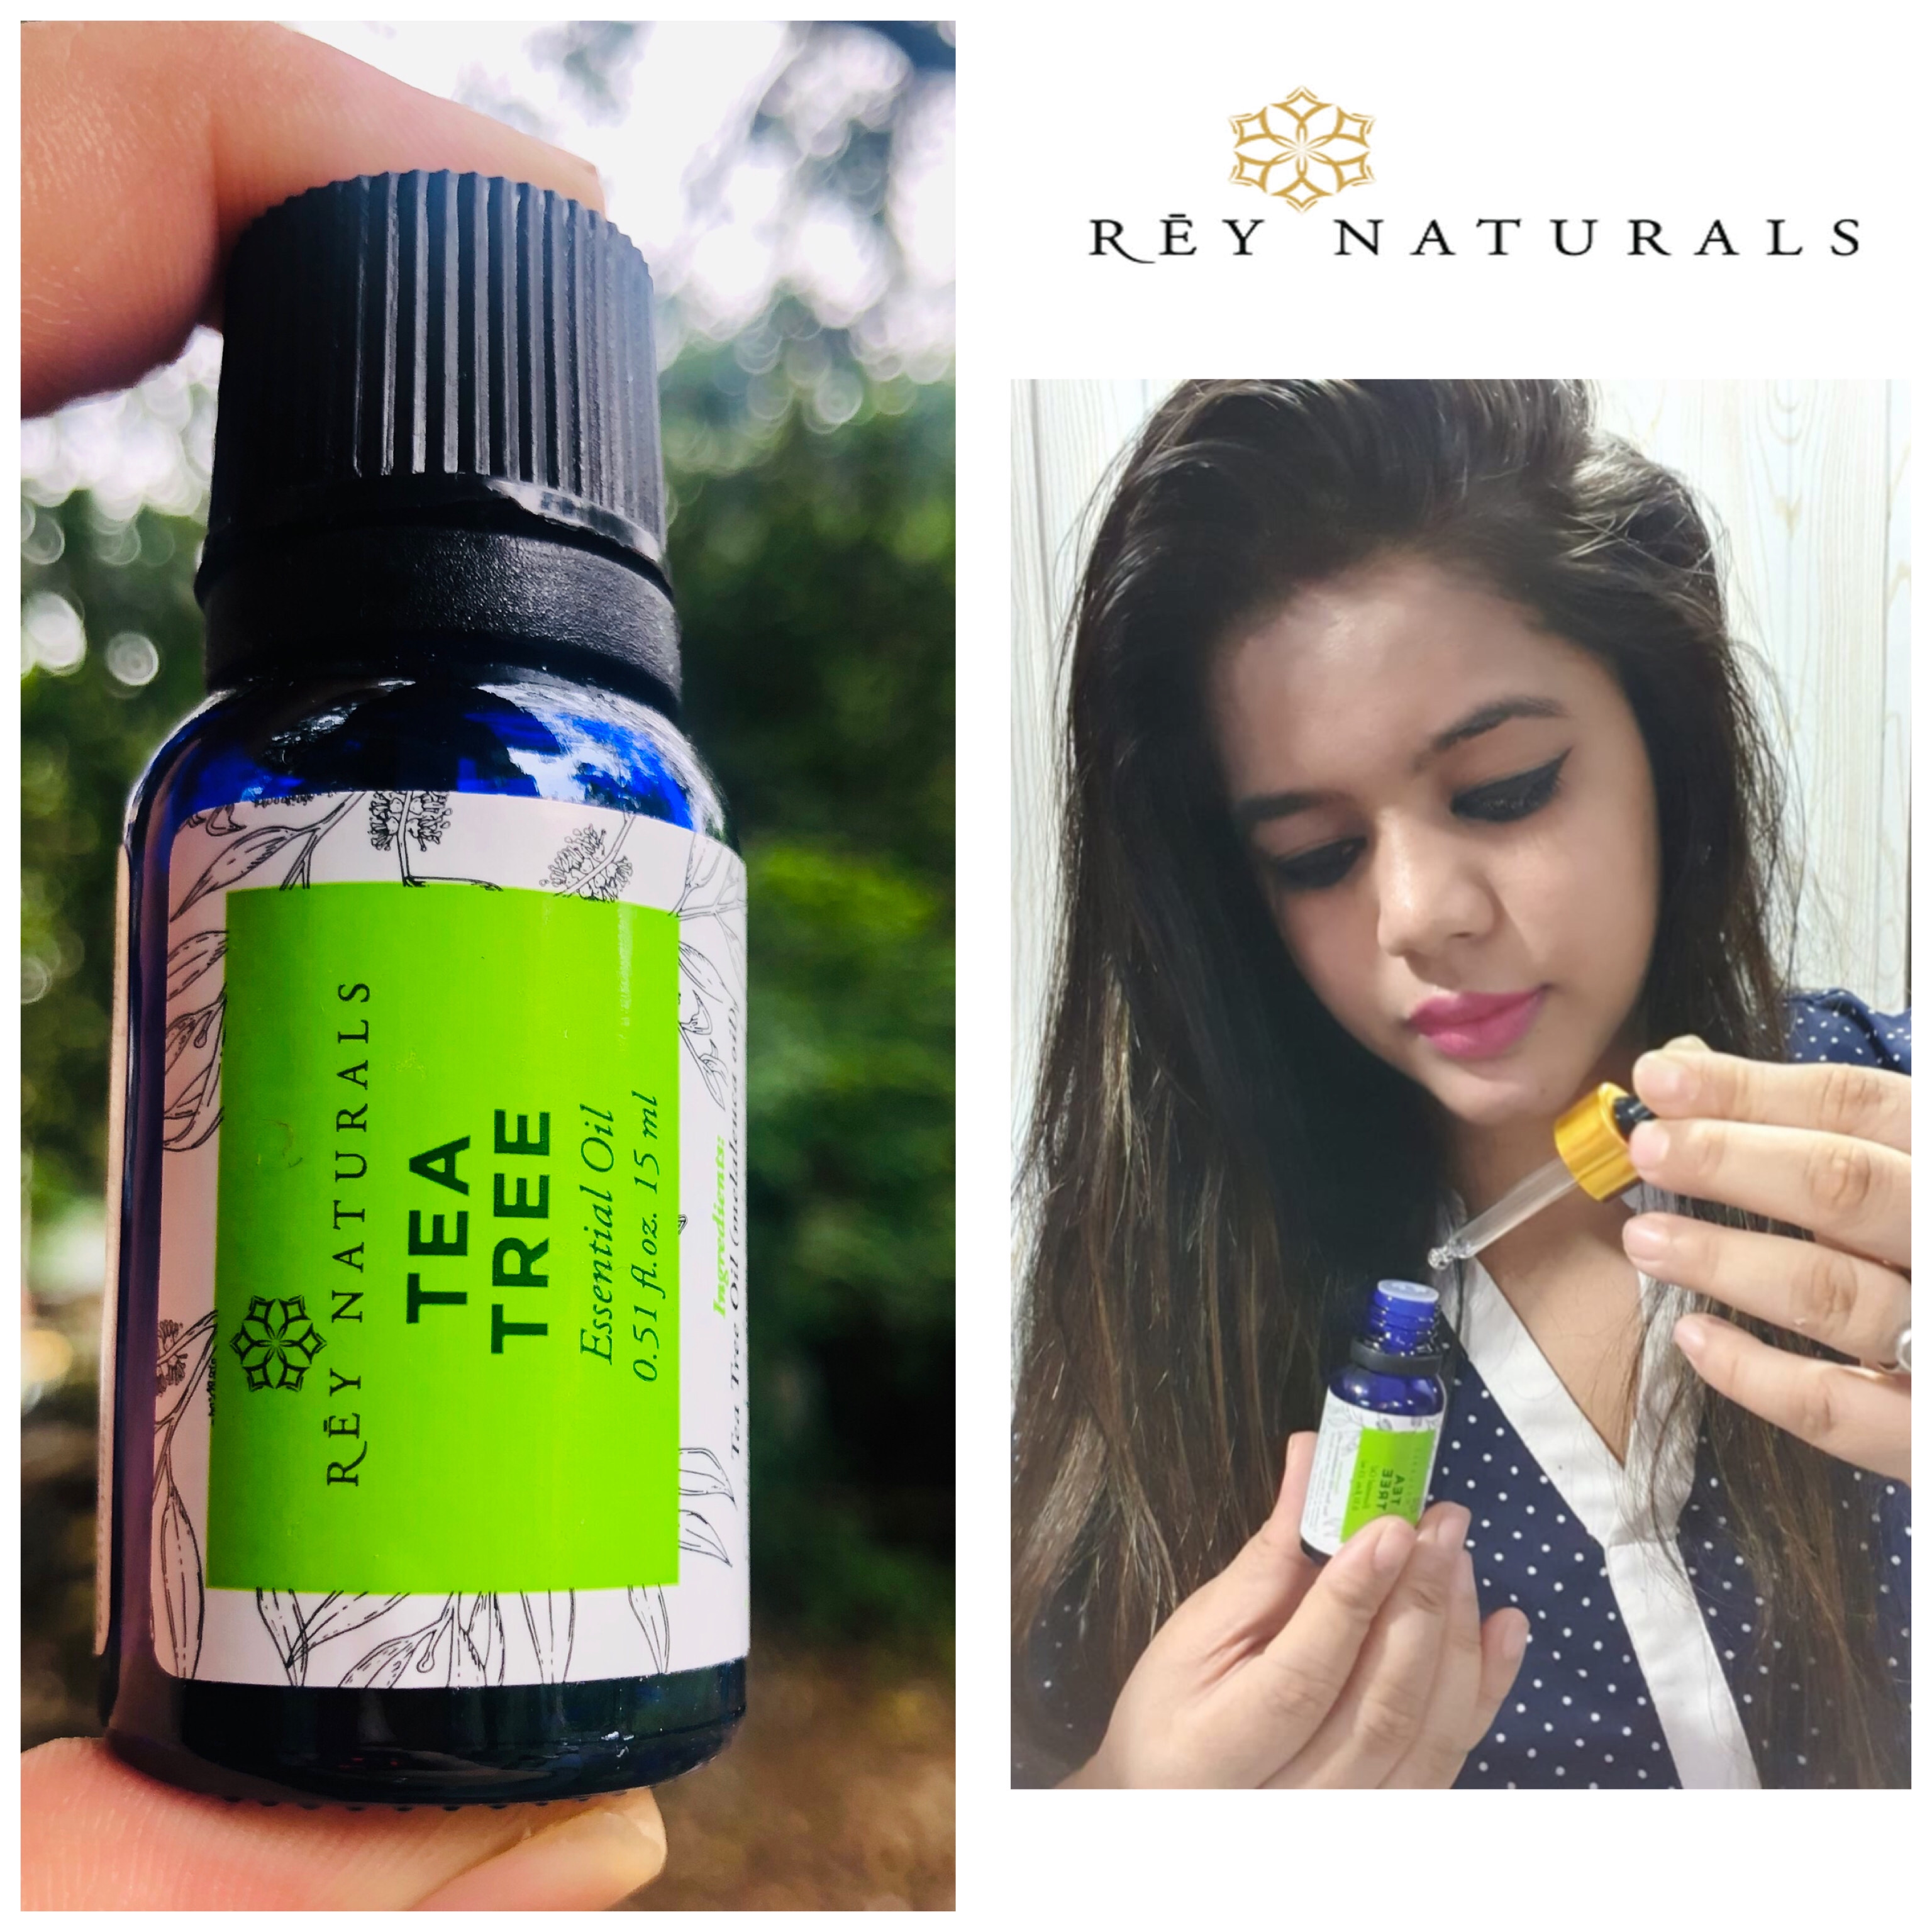 Rey Naturals Tea Tree Essential Oil-Works wonder for skin and hair-By rupalimehra186-1